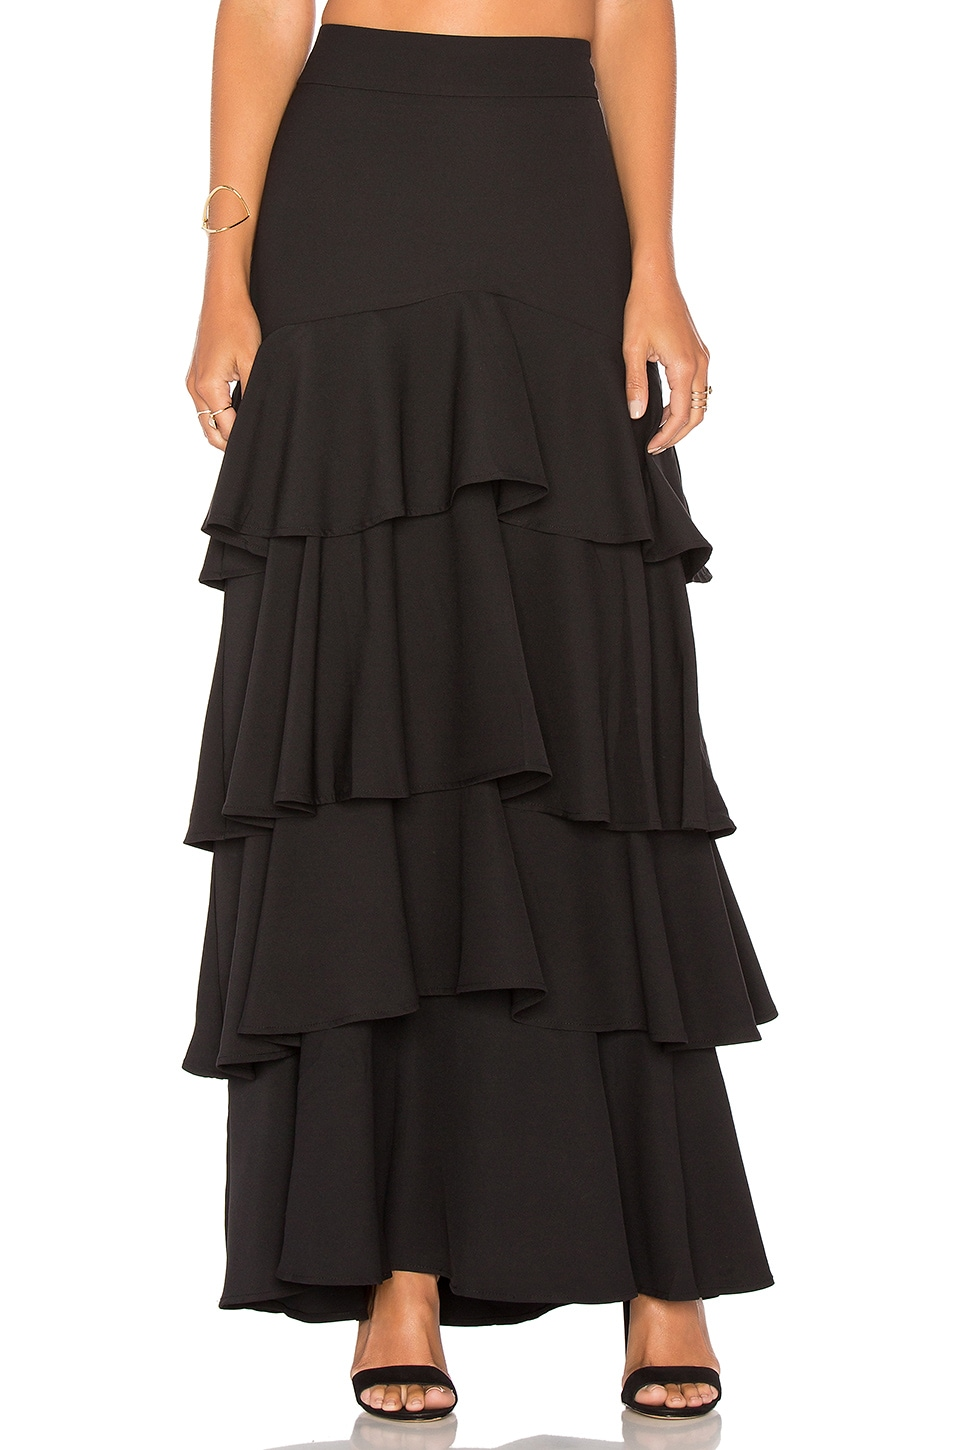 Liane Ruffled Skirt